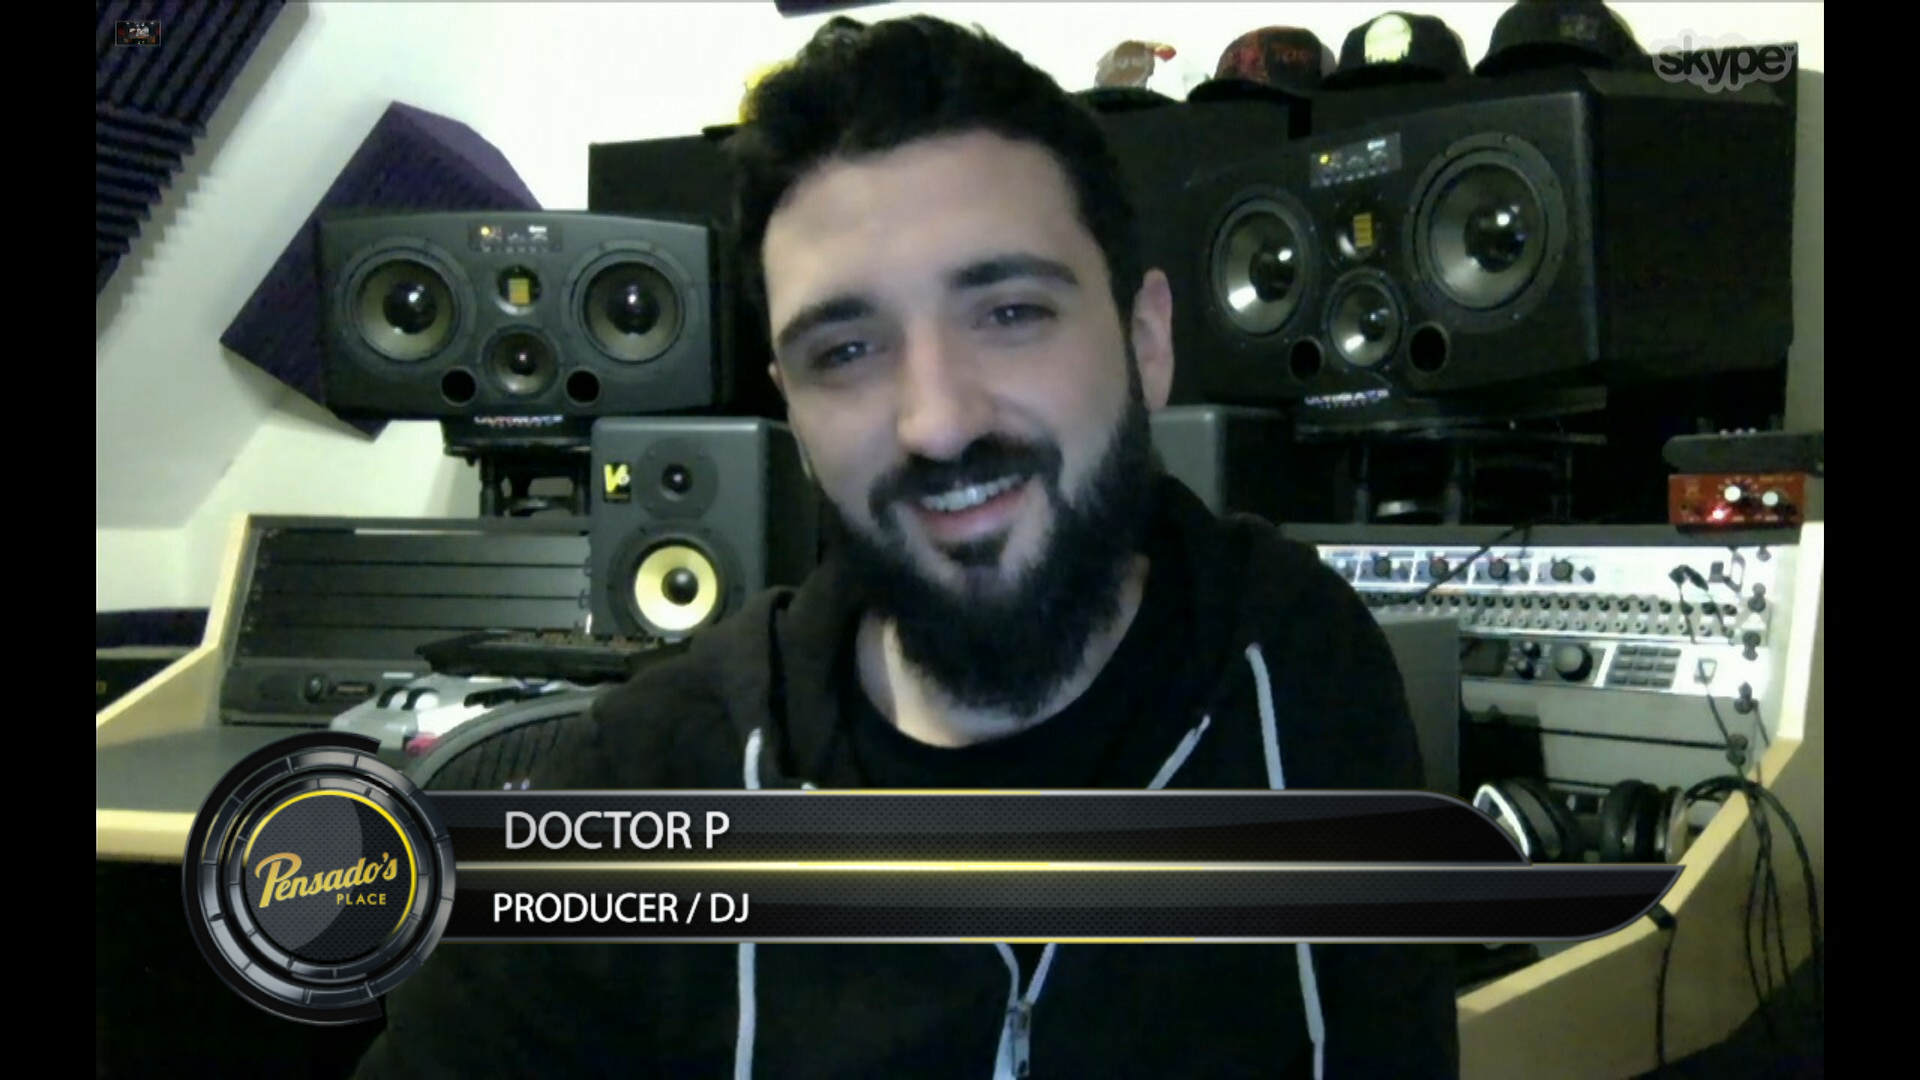 Renowned Bass Producer/DJ Doctor P